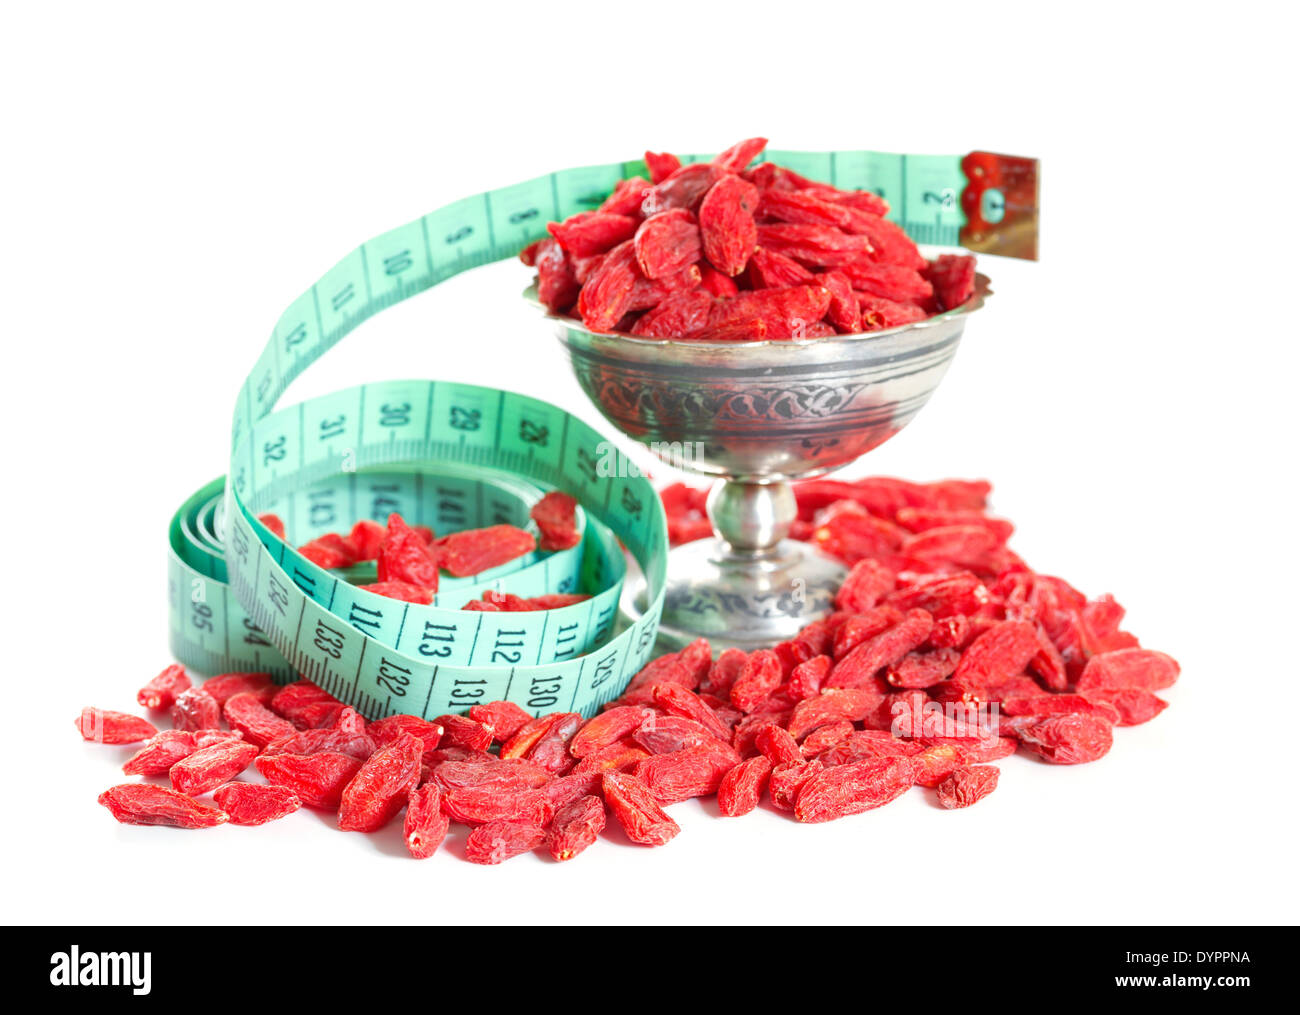 goji berries with a measuring meter isolated on white background - Stock Image